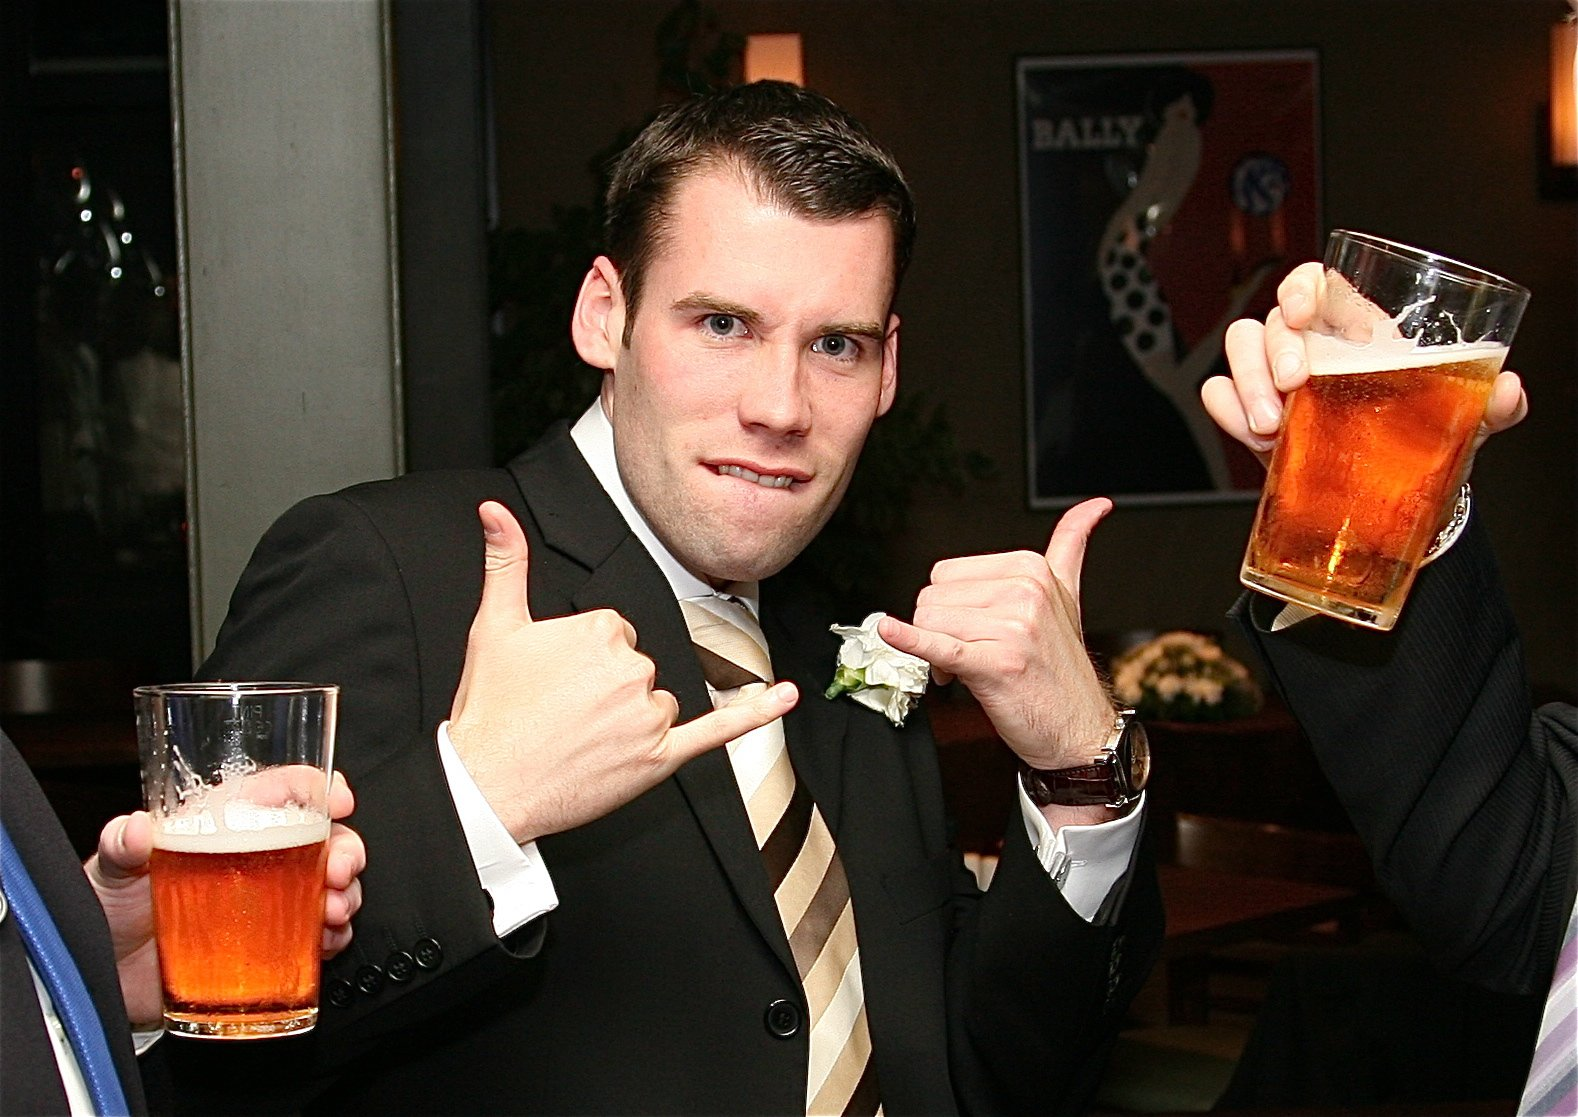 Man in black suit and stripe tie, flanked by hands holding pints of beer